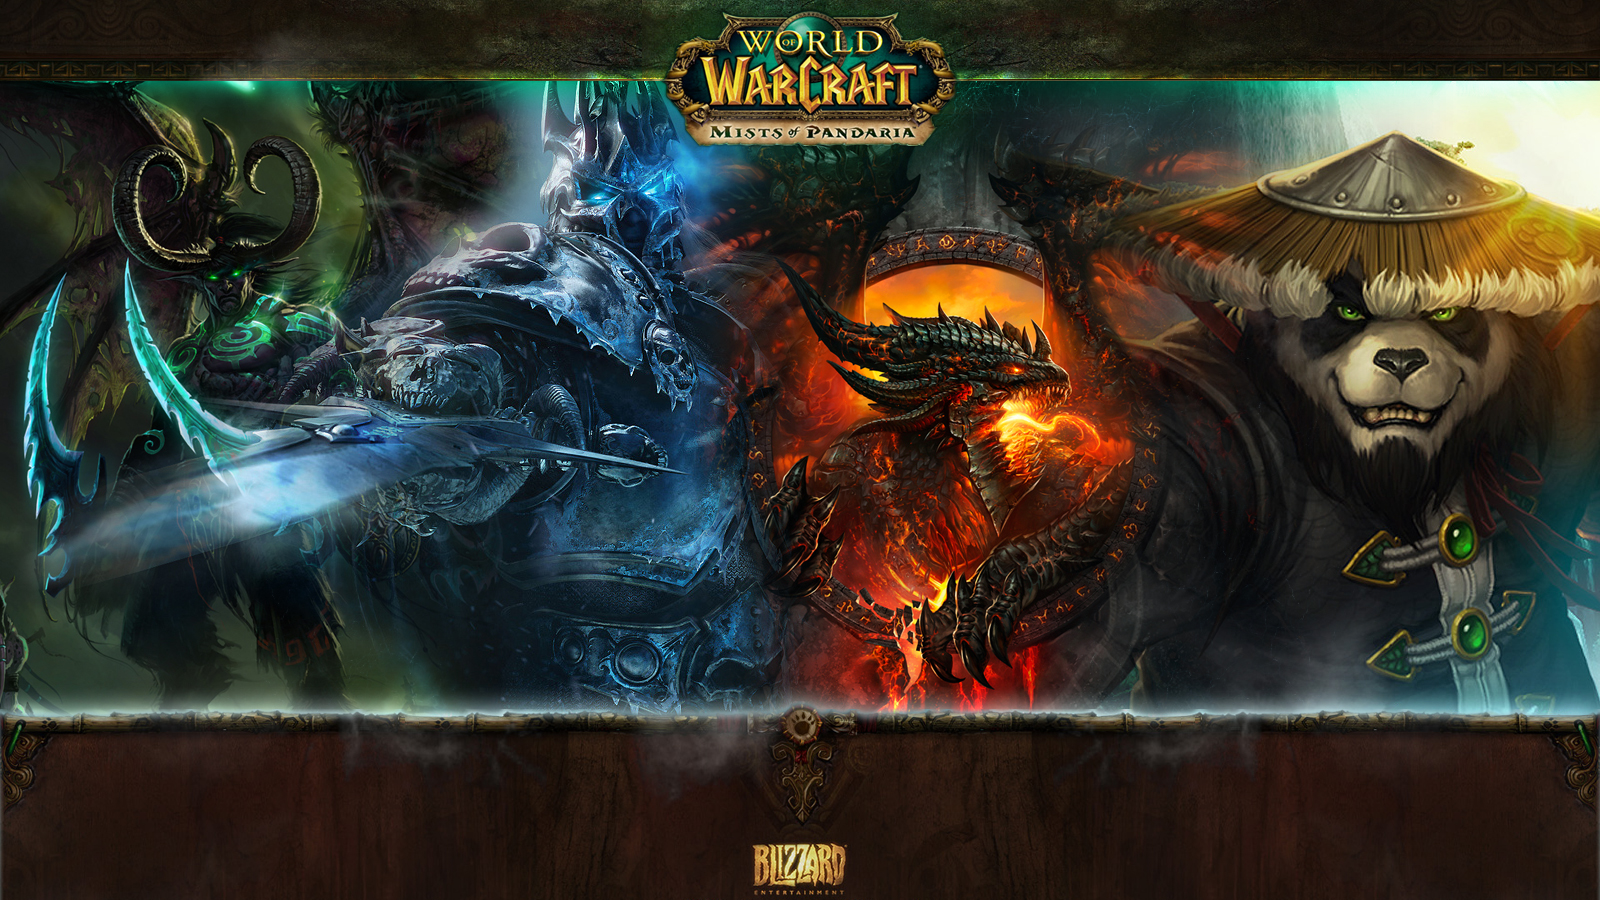 World of Warcraft (WoW) is now ten years old, and still has over seven million people playing. Over those ten years the game has seen many major changes, ...